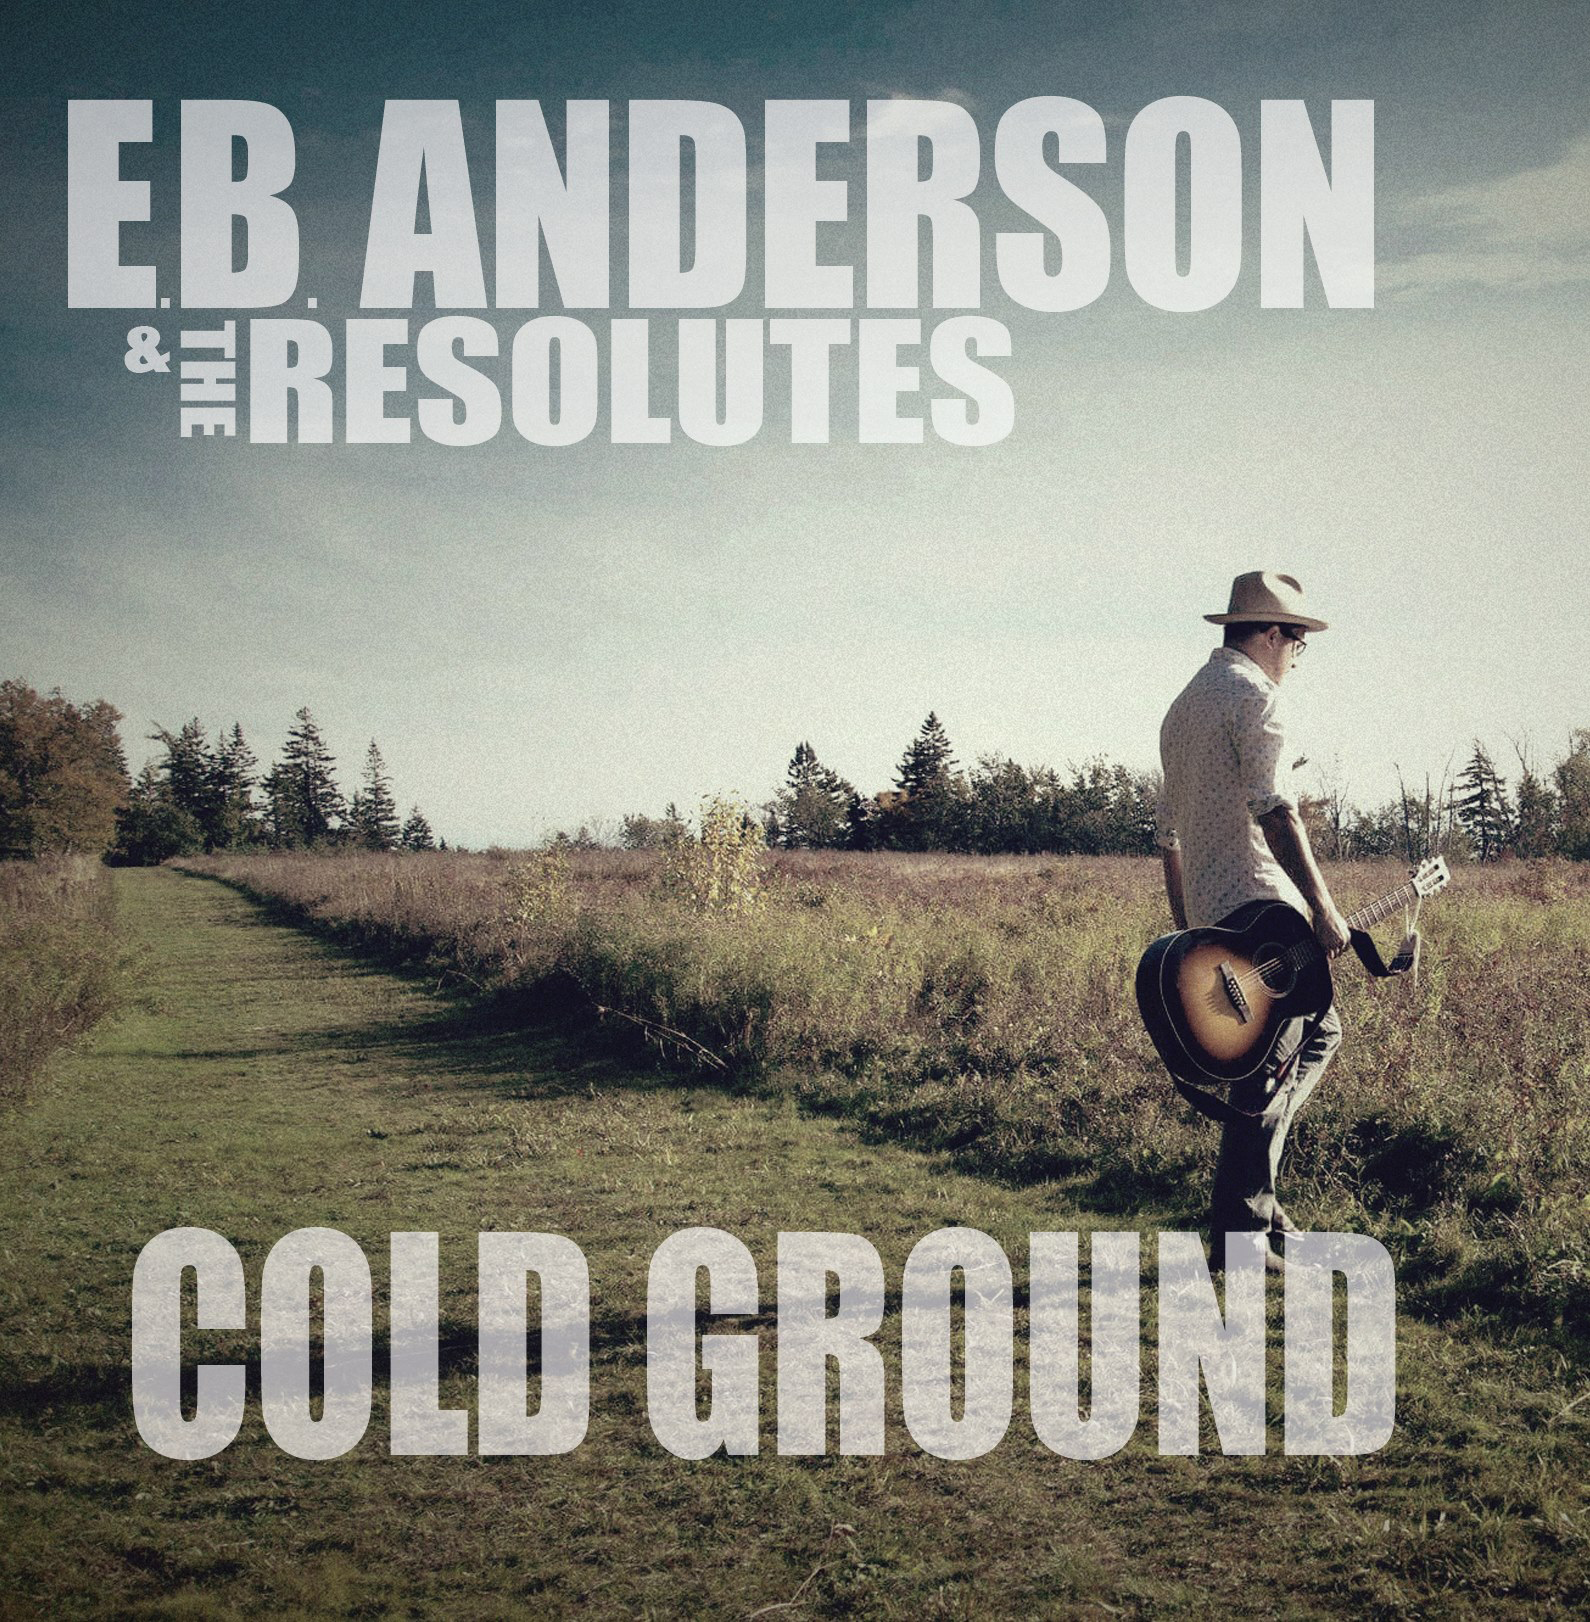 Cover photo for the latest E.B.Anderson & The Resolutes CD